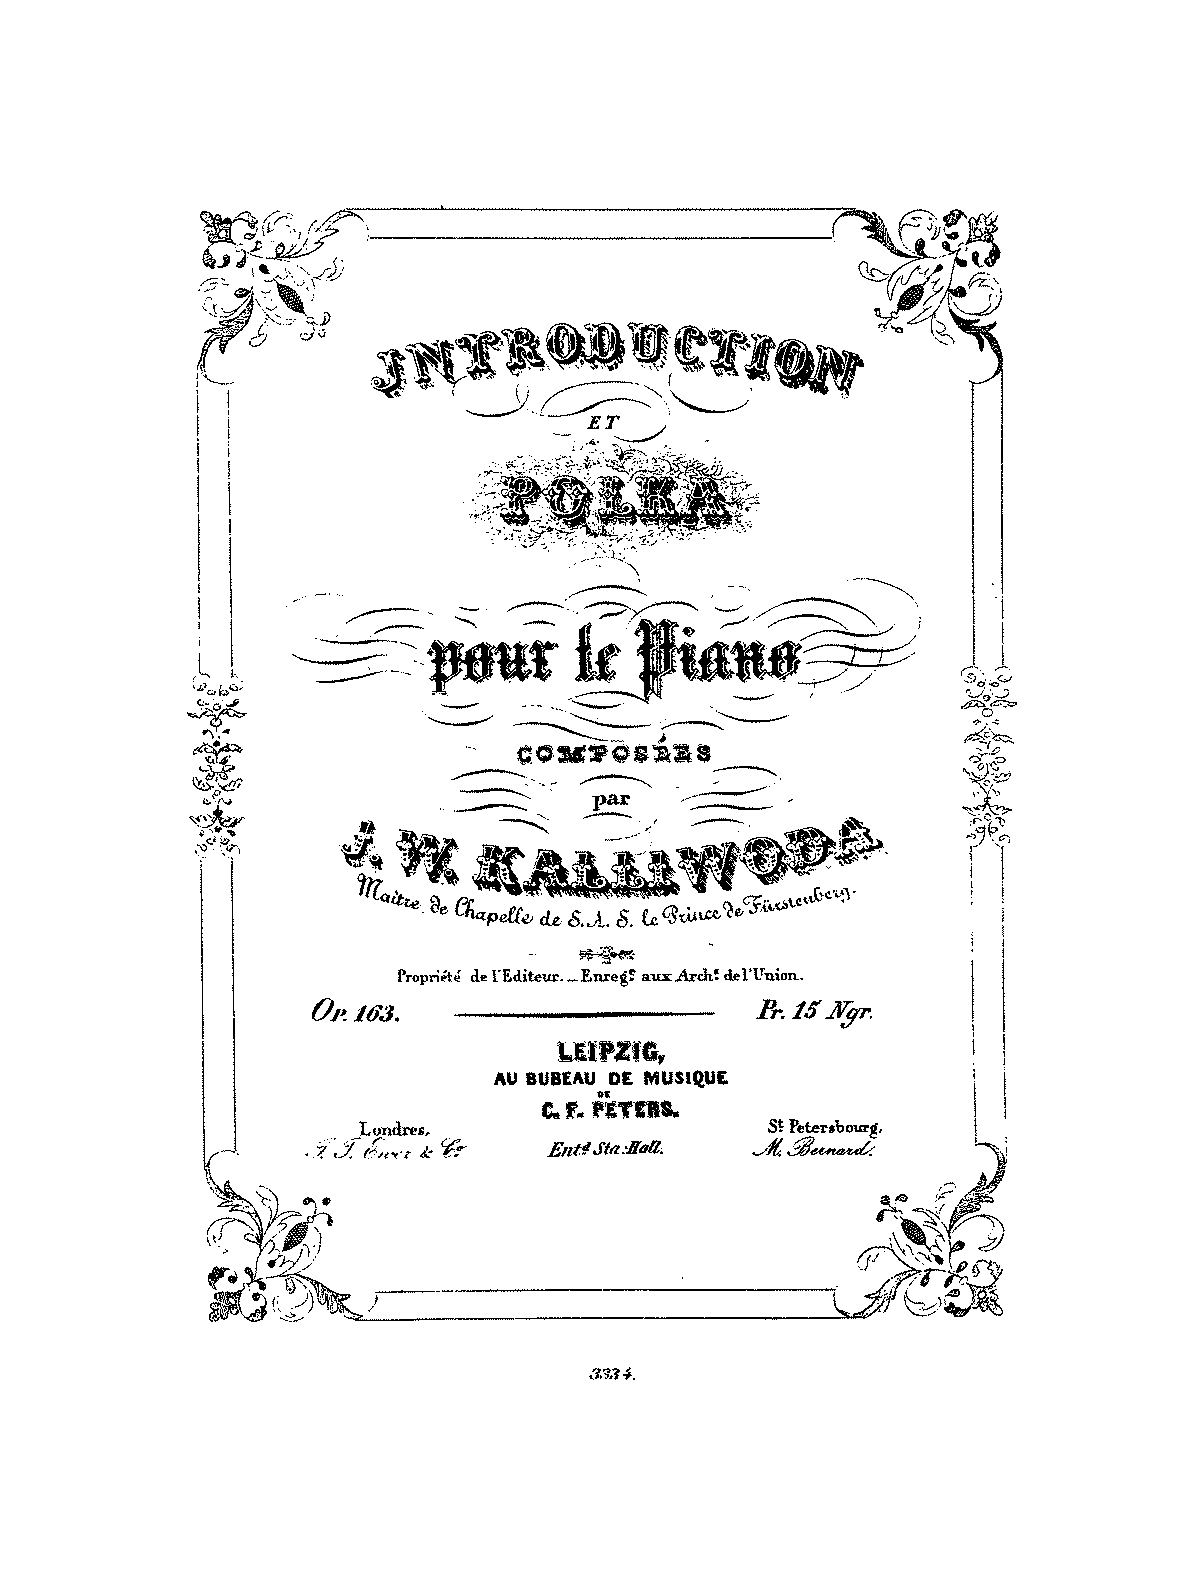 PMLP680346-JWKalliwoda Introduction et polka, Op.163.pdf